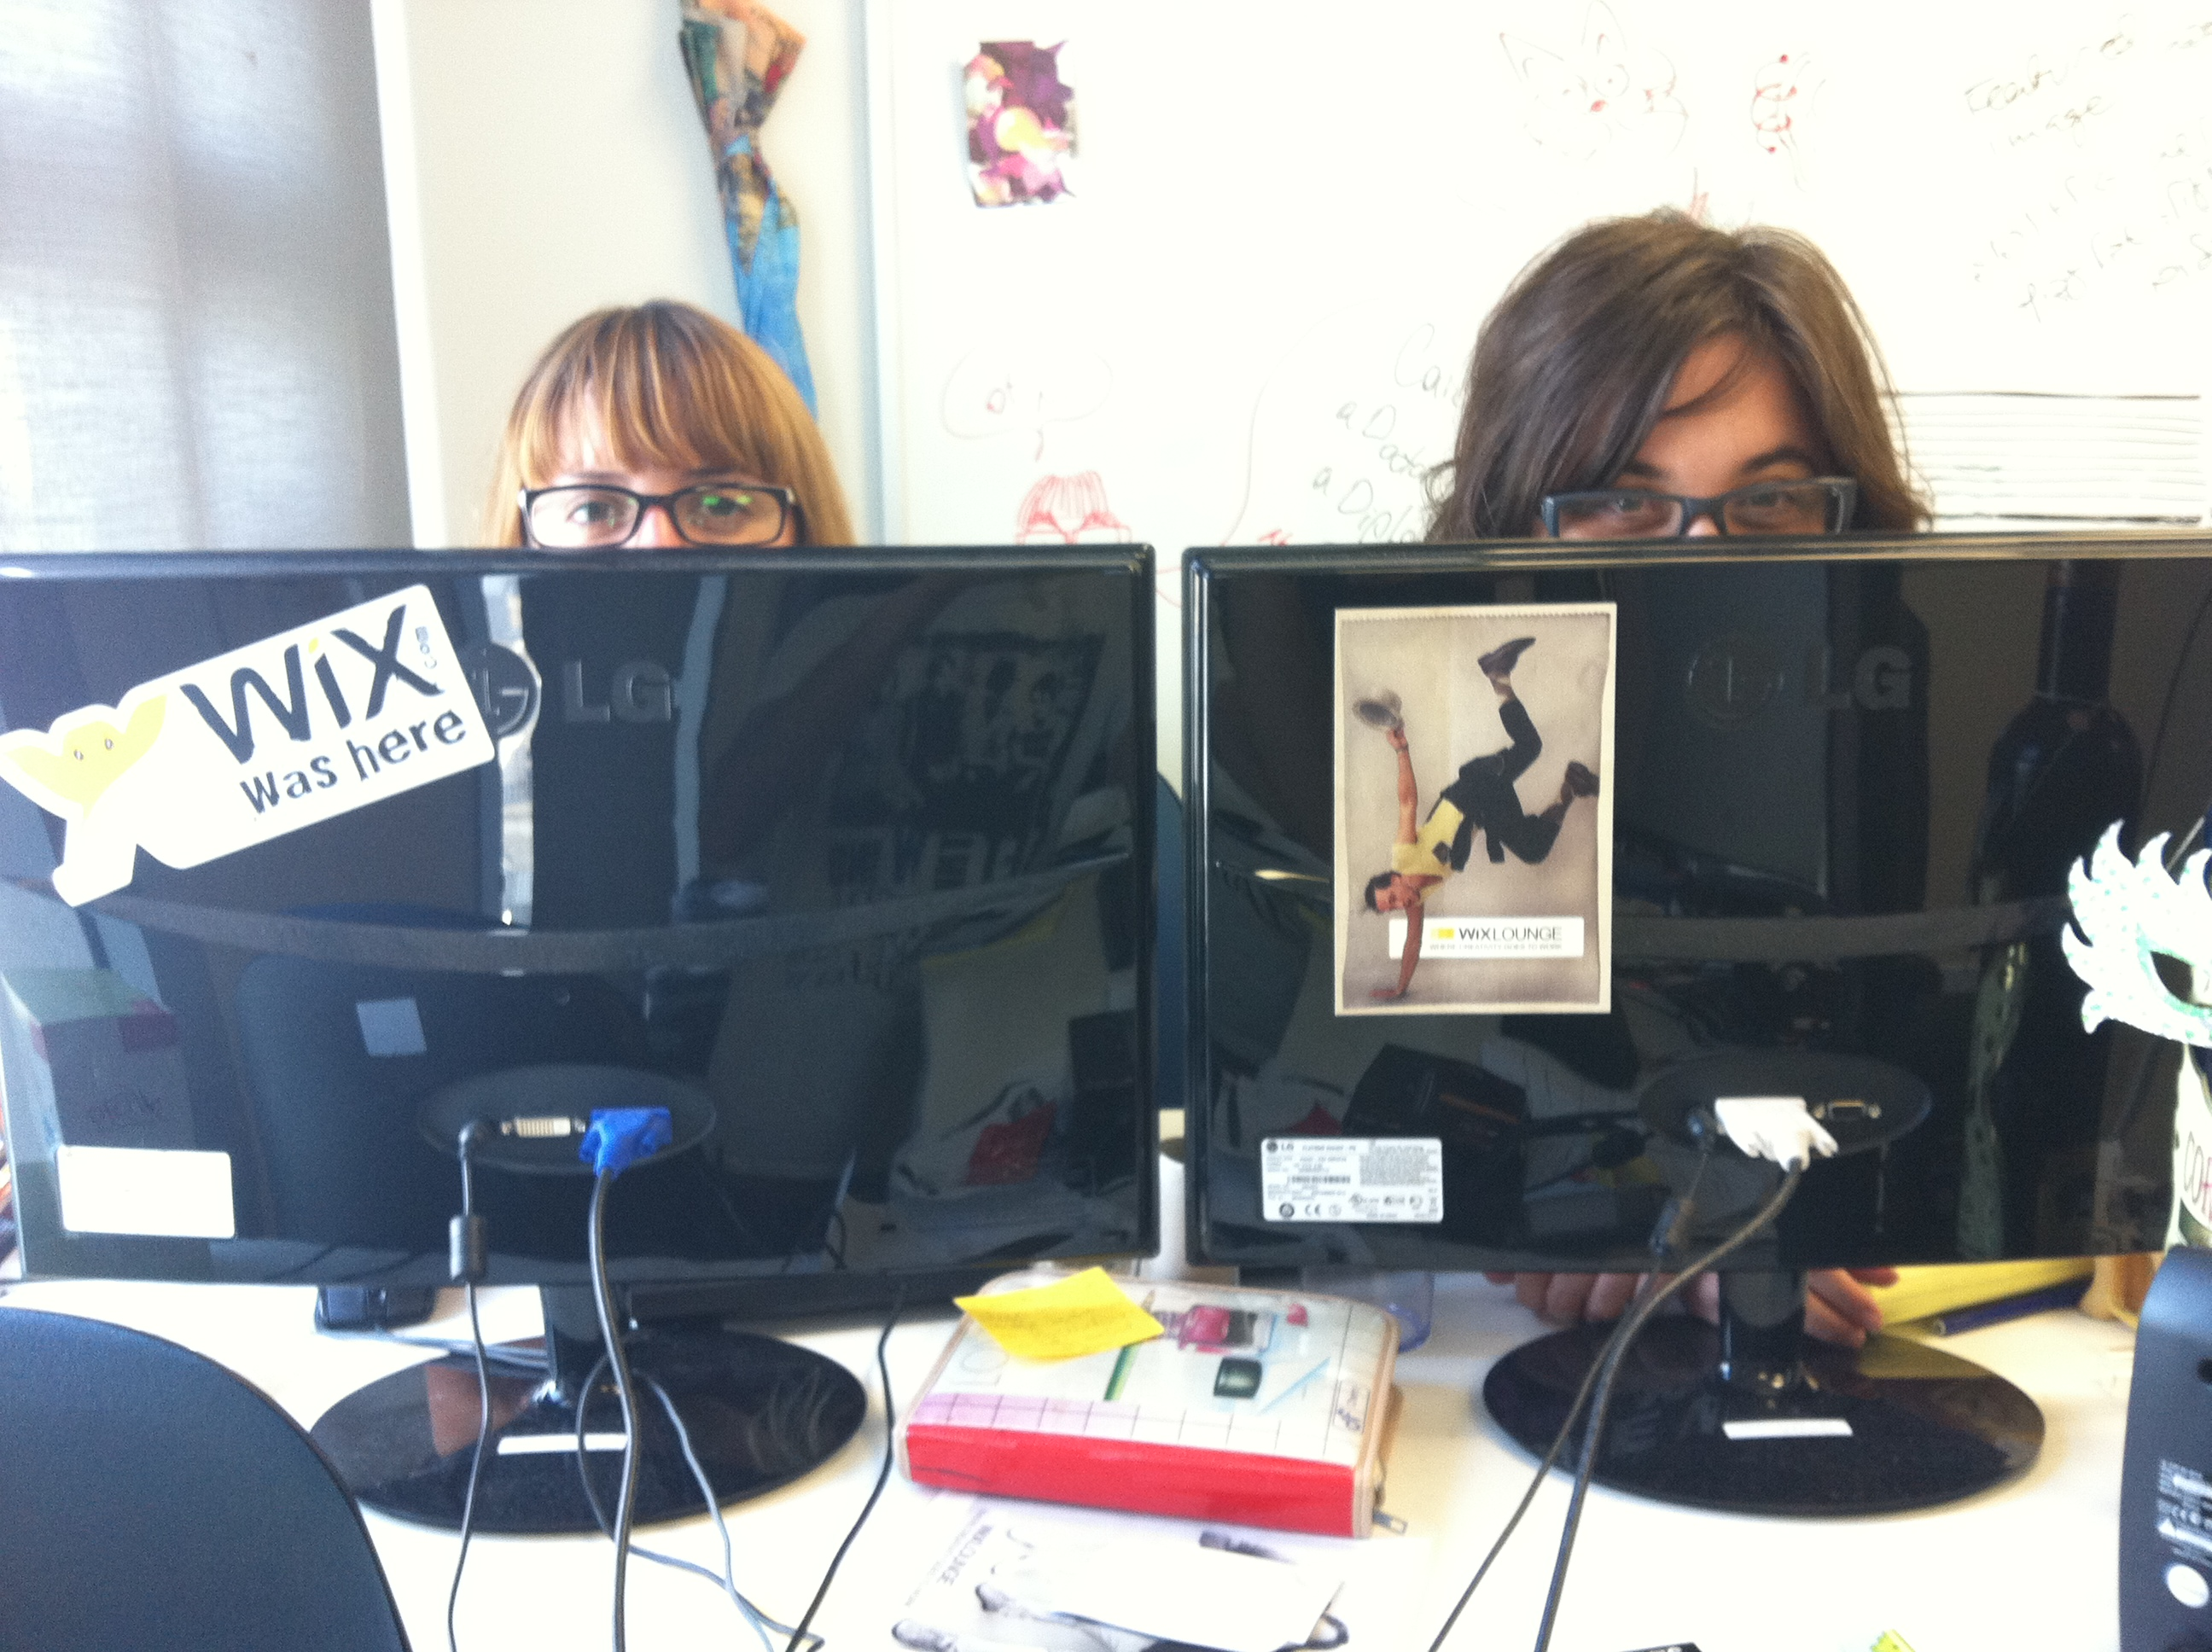 Just another day at Wix.com